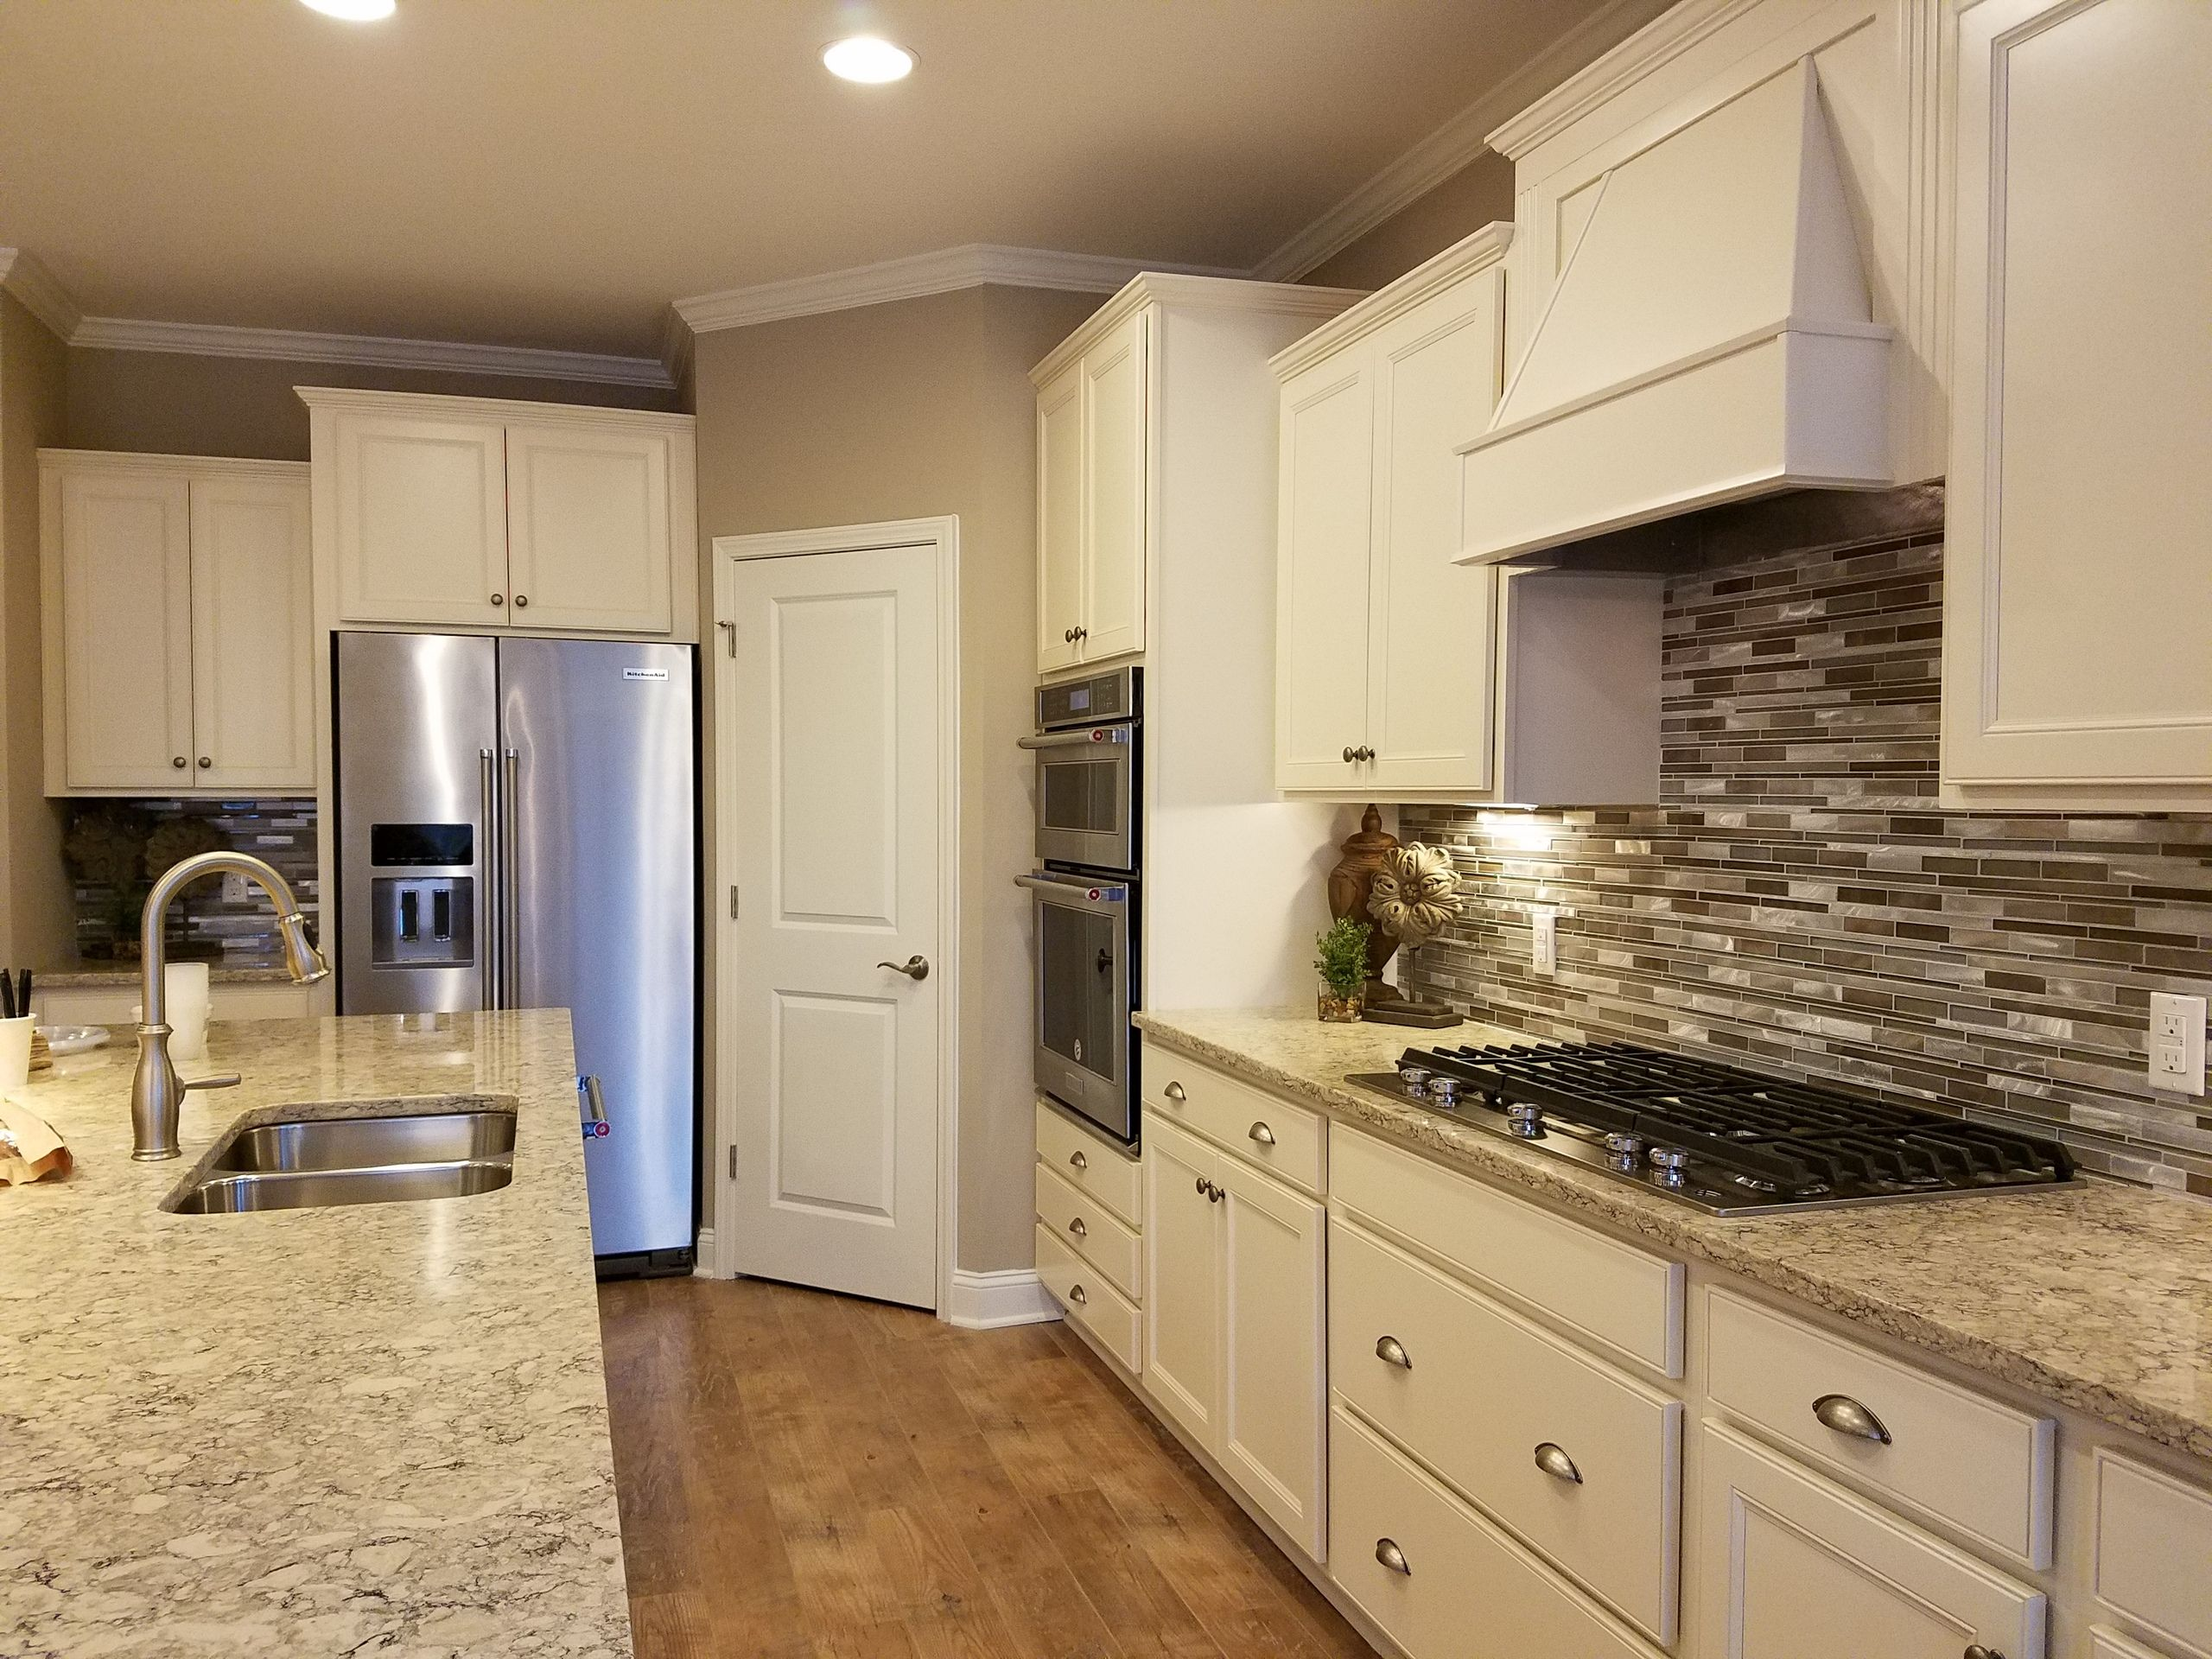 RiverLights - Del Webb - The Castle Rock Kitchen